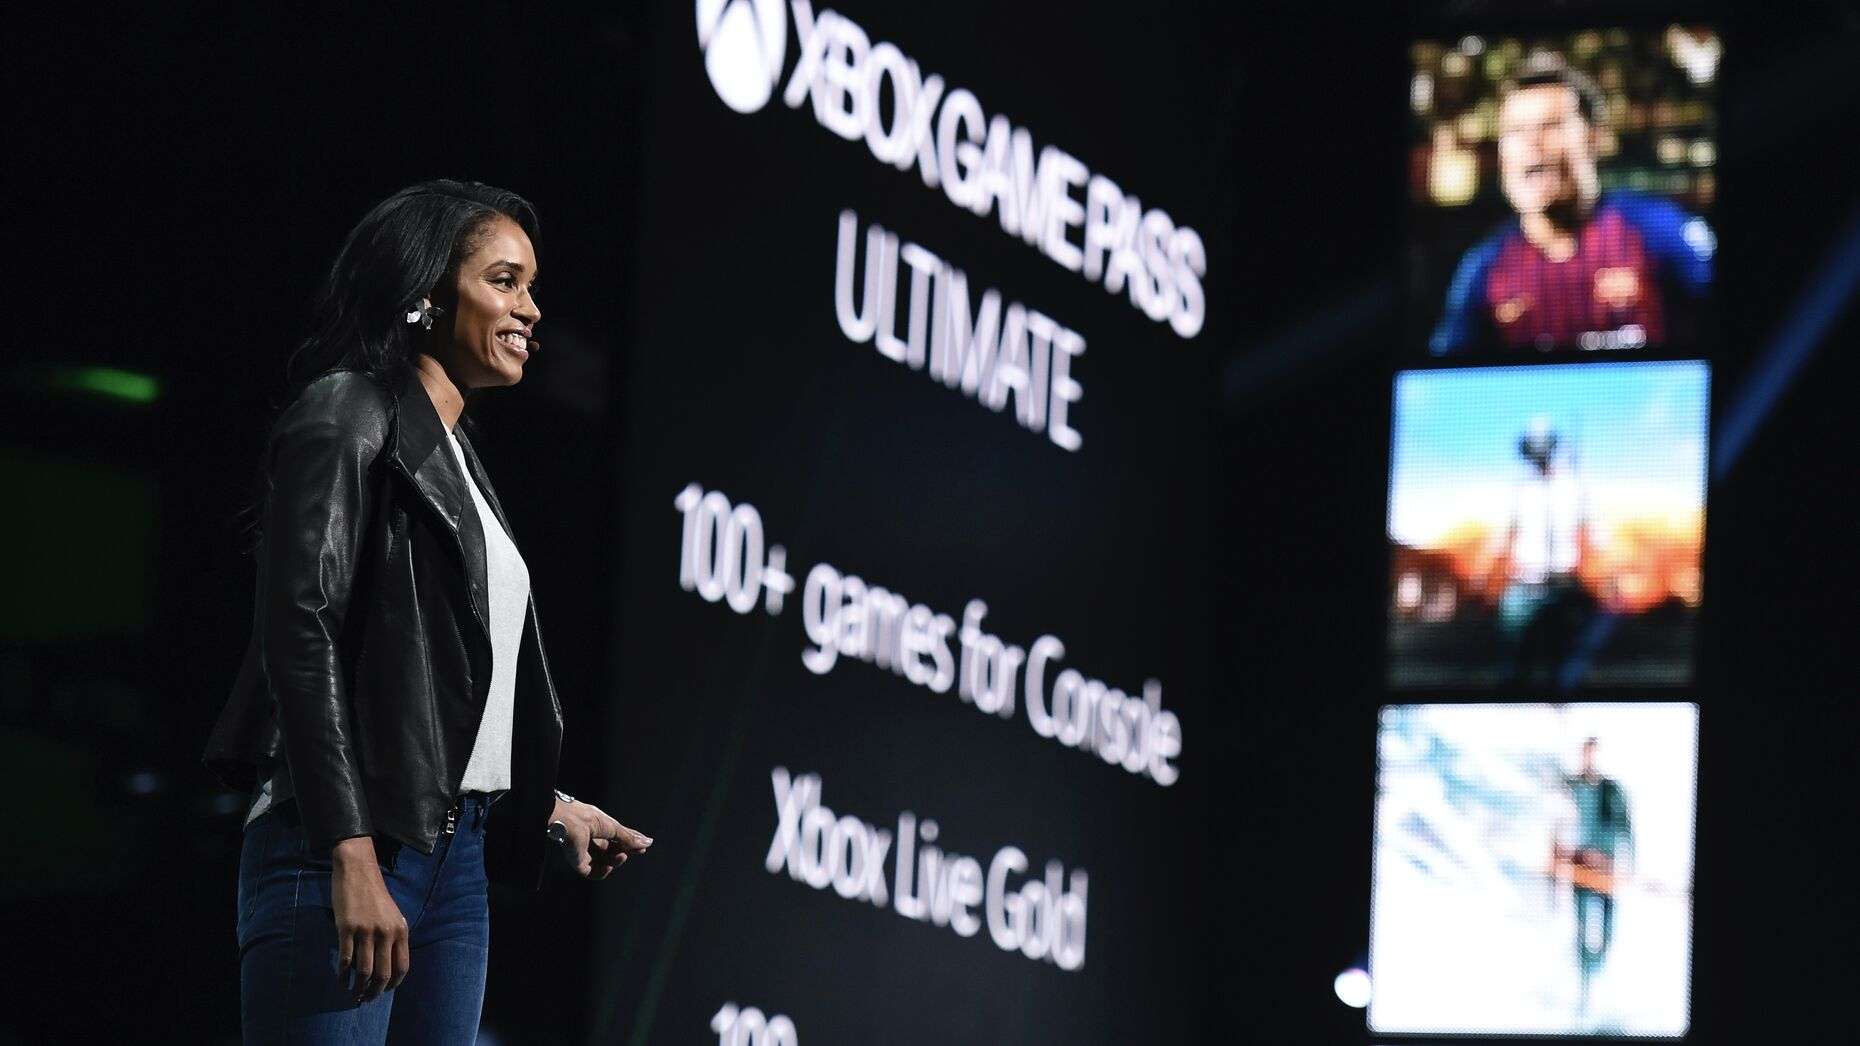 Sarah Bond, Head of Global Gaming Partnerships and Development, at an Xbox briefing last year. Photo by AP